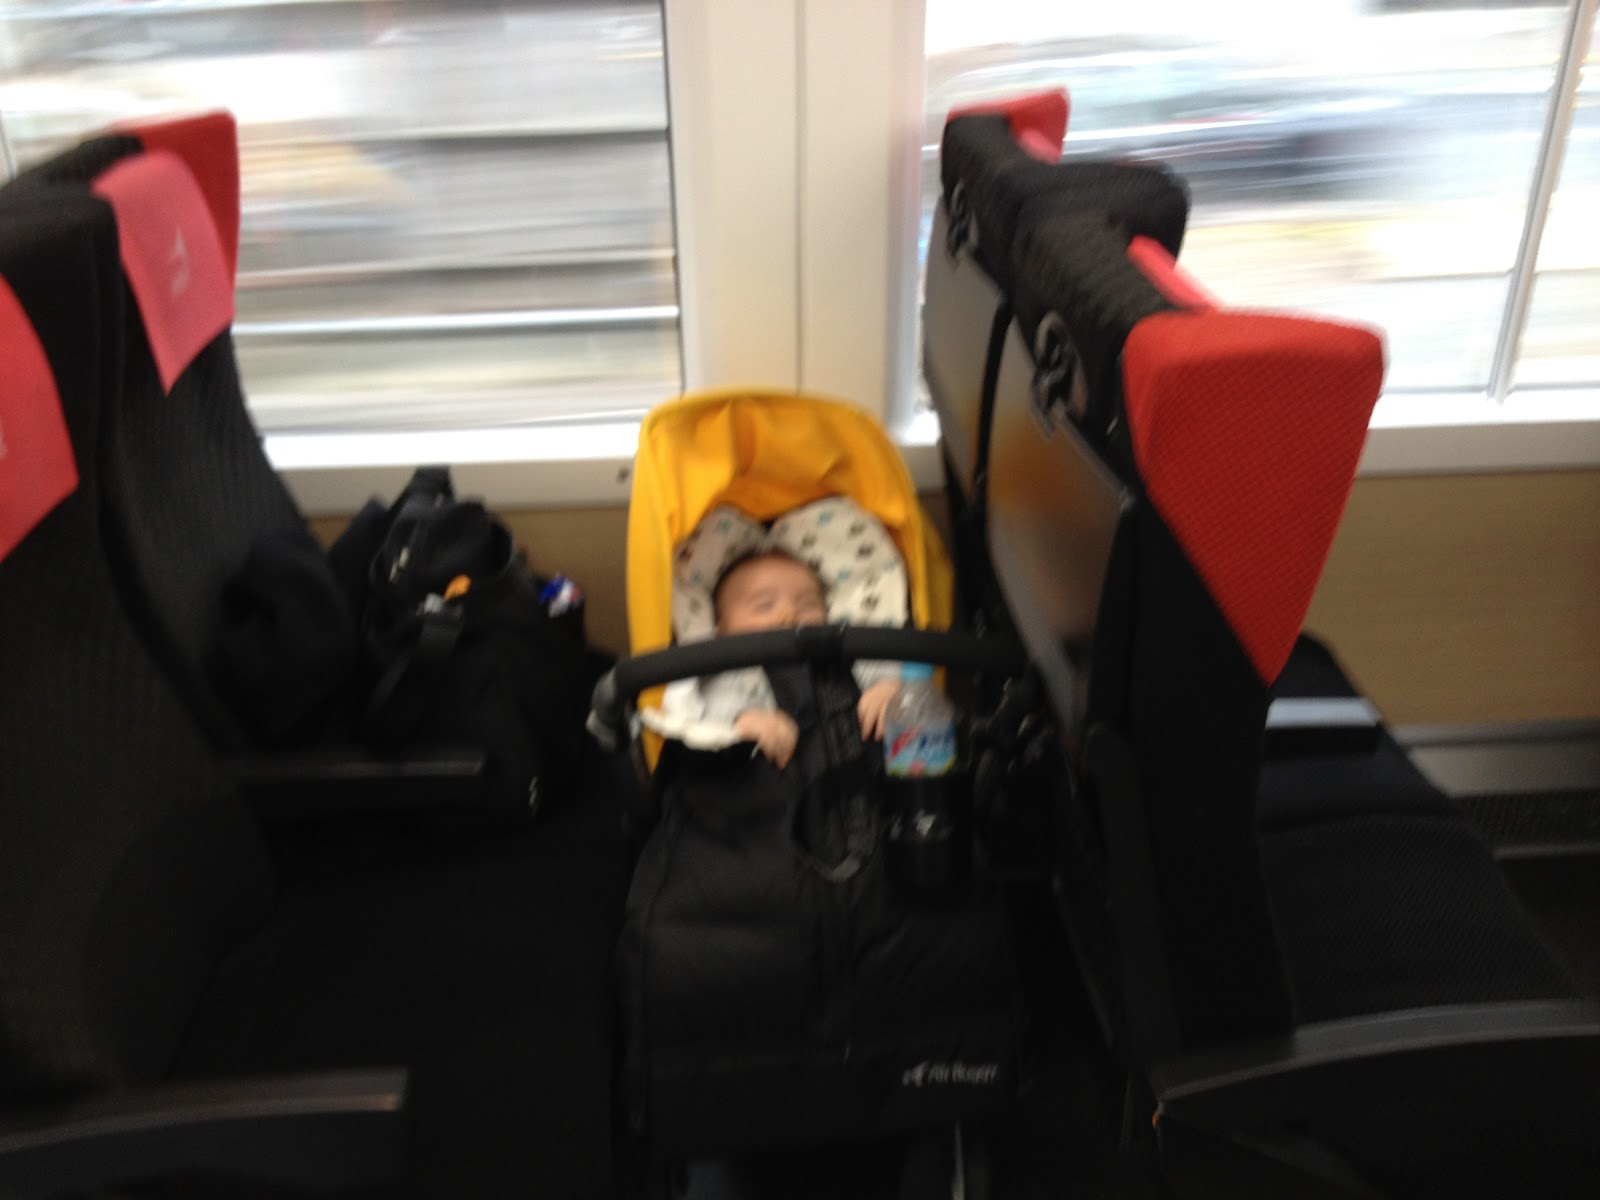 Catching Narita Express with a baby and stroller